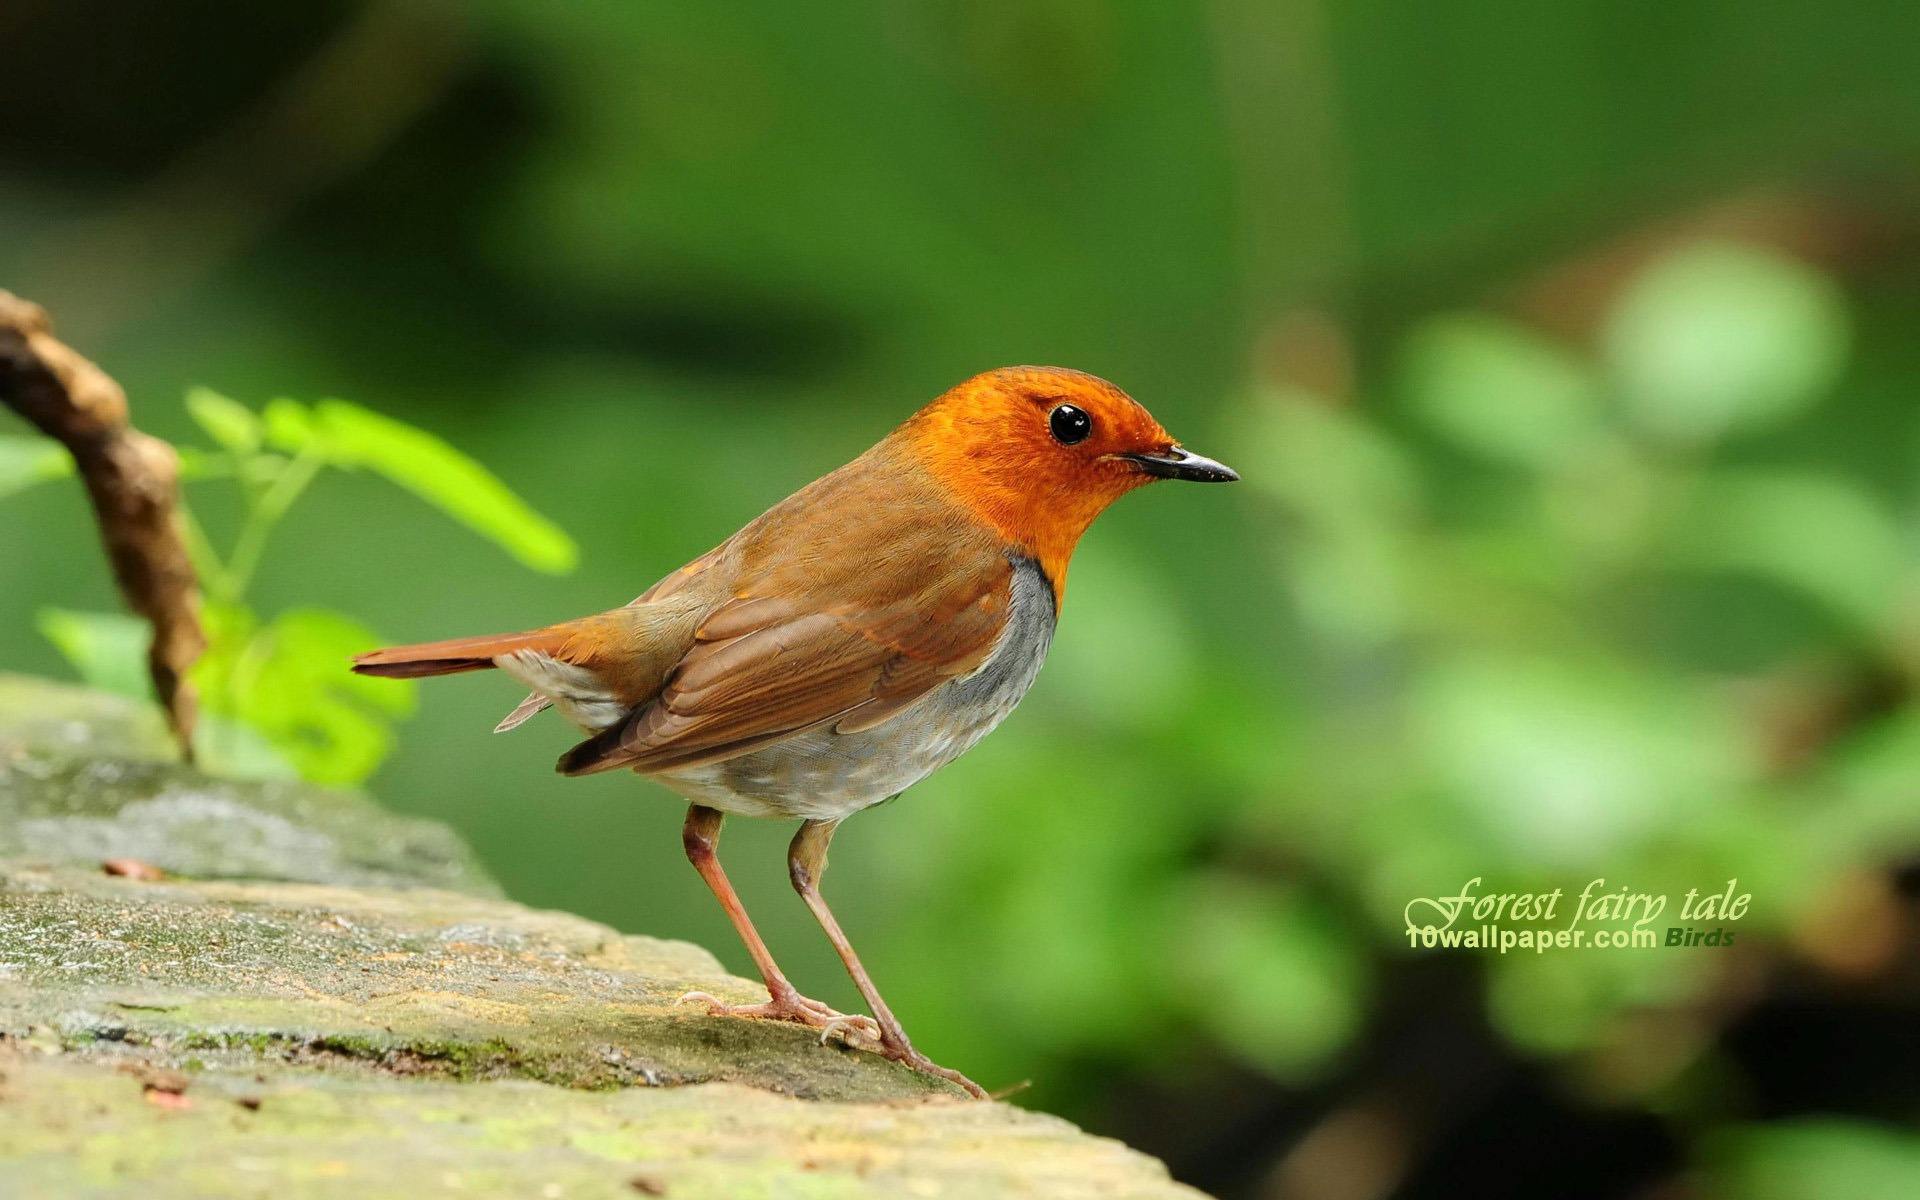 cute_little_bird-Japanese_song_Robin_wallpaper_1920x1200.jpg